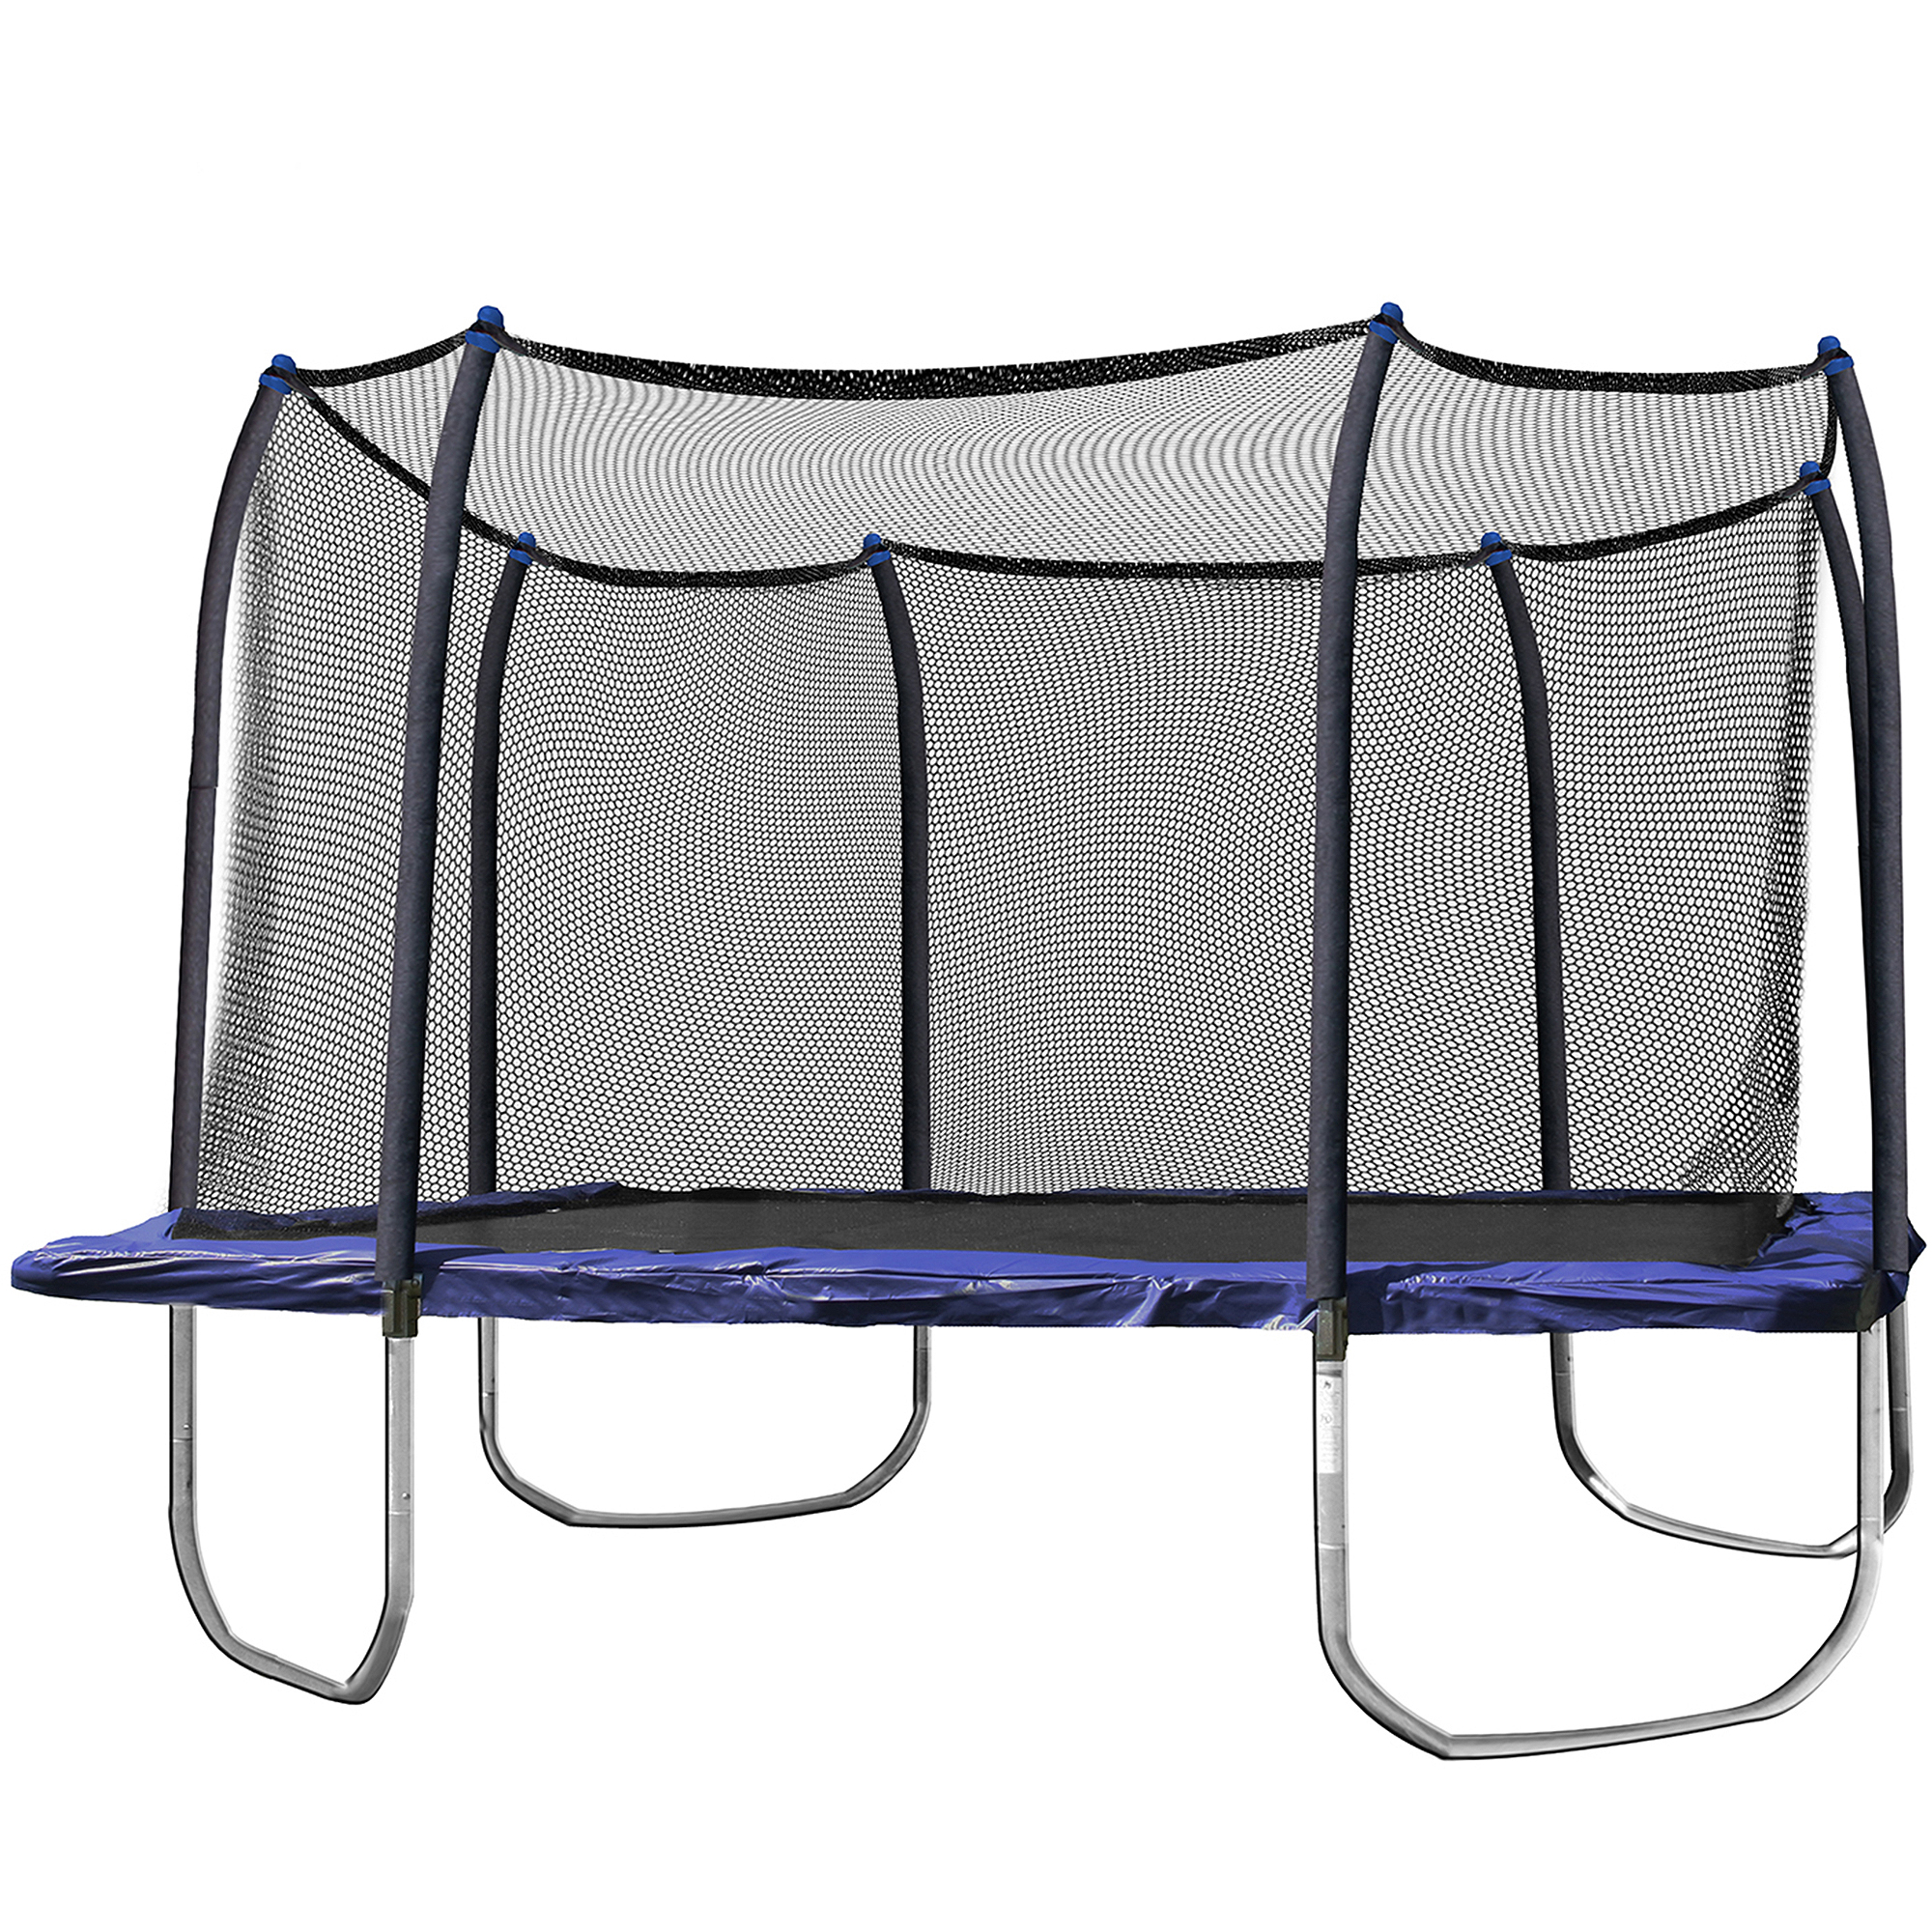 Skywalker Trampolines 14 x 14 ft. Square Trampoline with ...